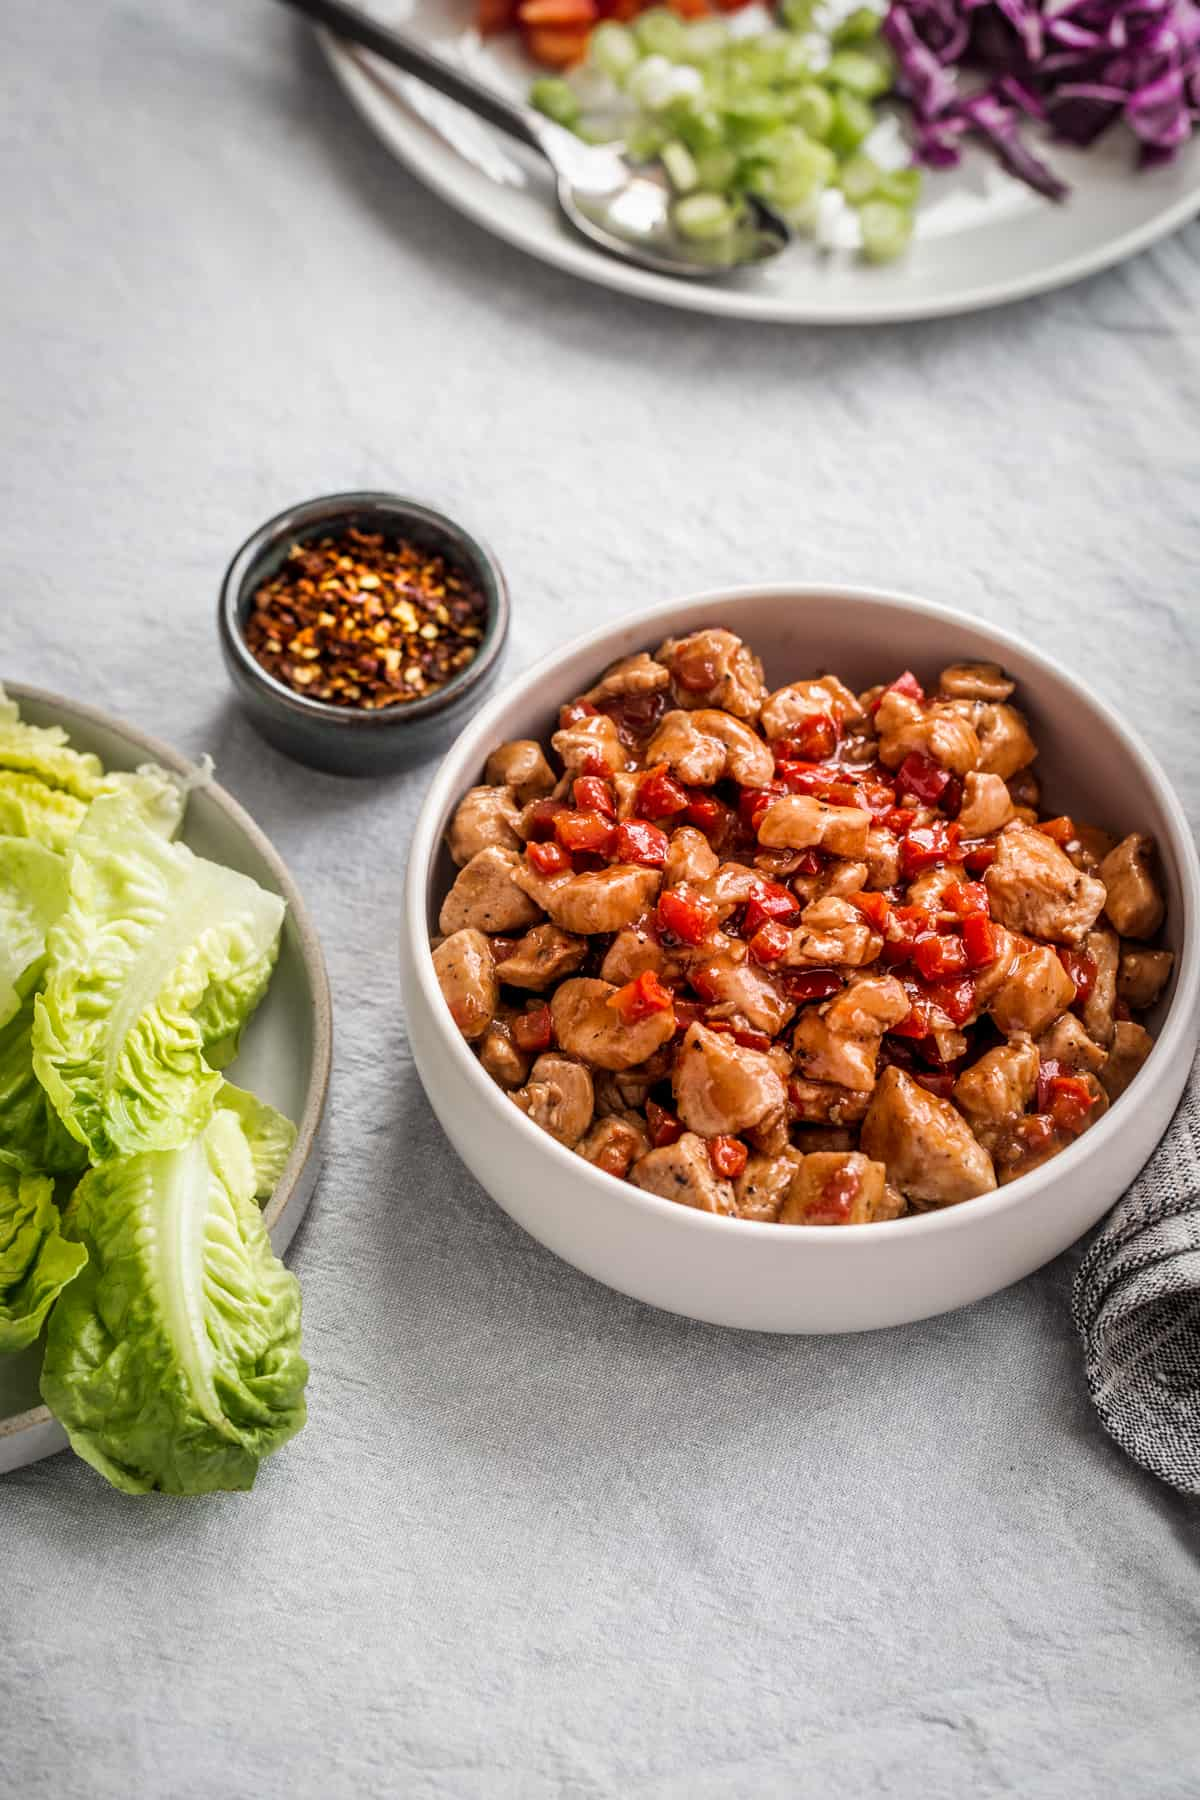 These Asian-Inspired Lettuce Wraps Are The Perfect Back-To-School Dinner